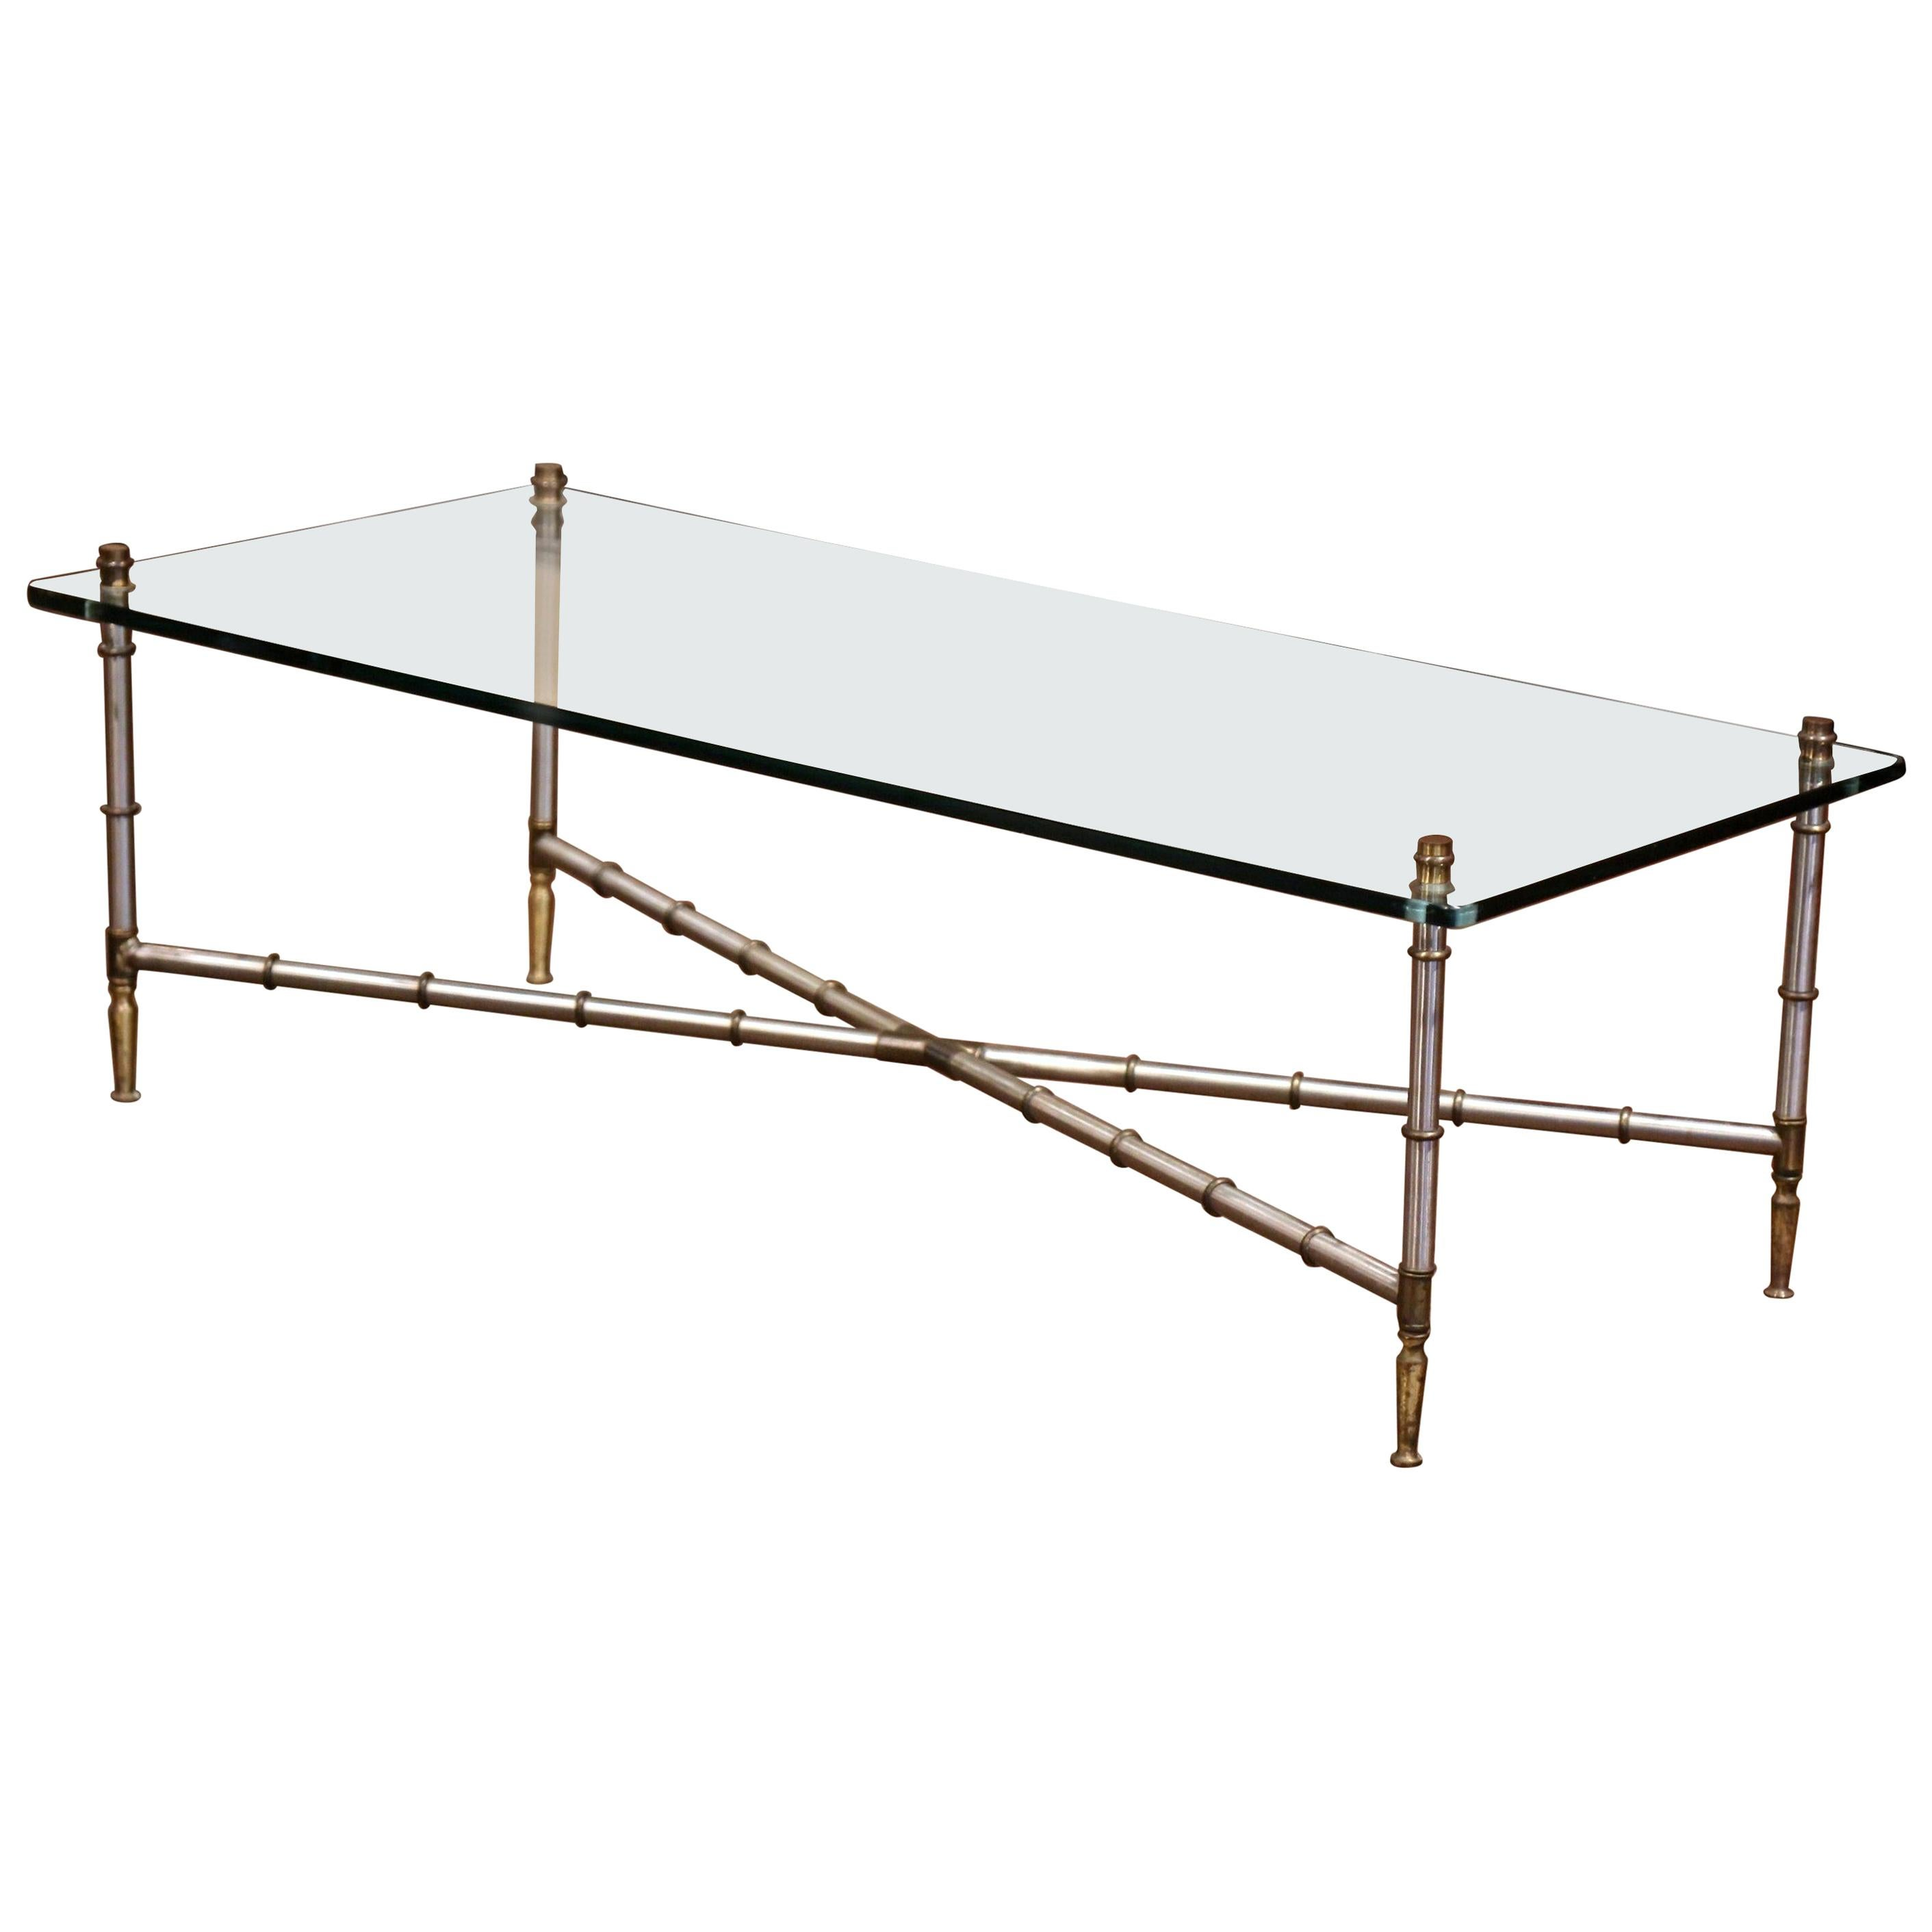 Vintage French Chrome and Glass Faux Bamboo Coffee Table from Maison Jansen